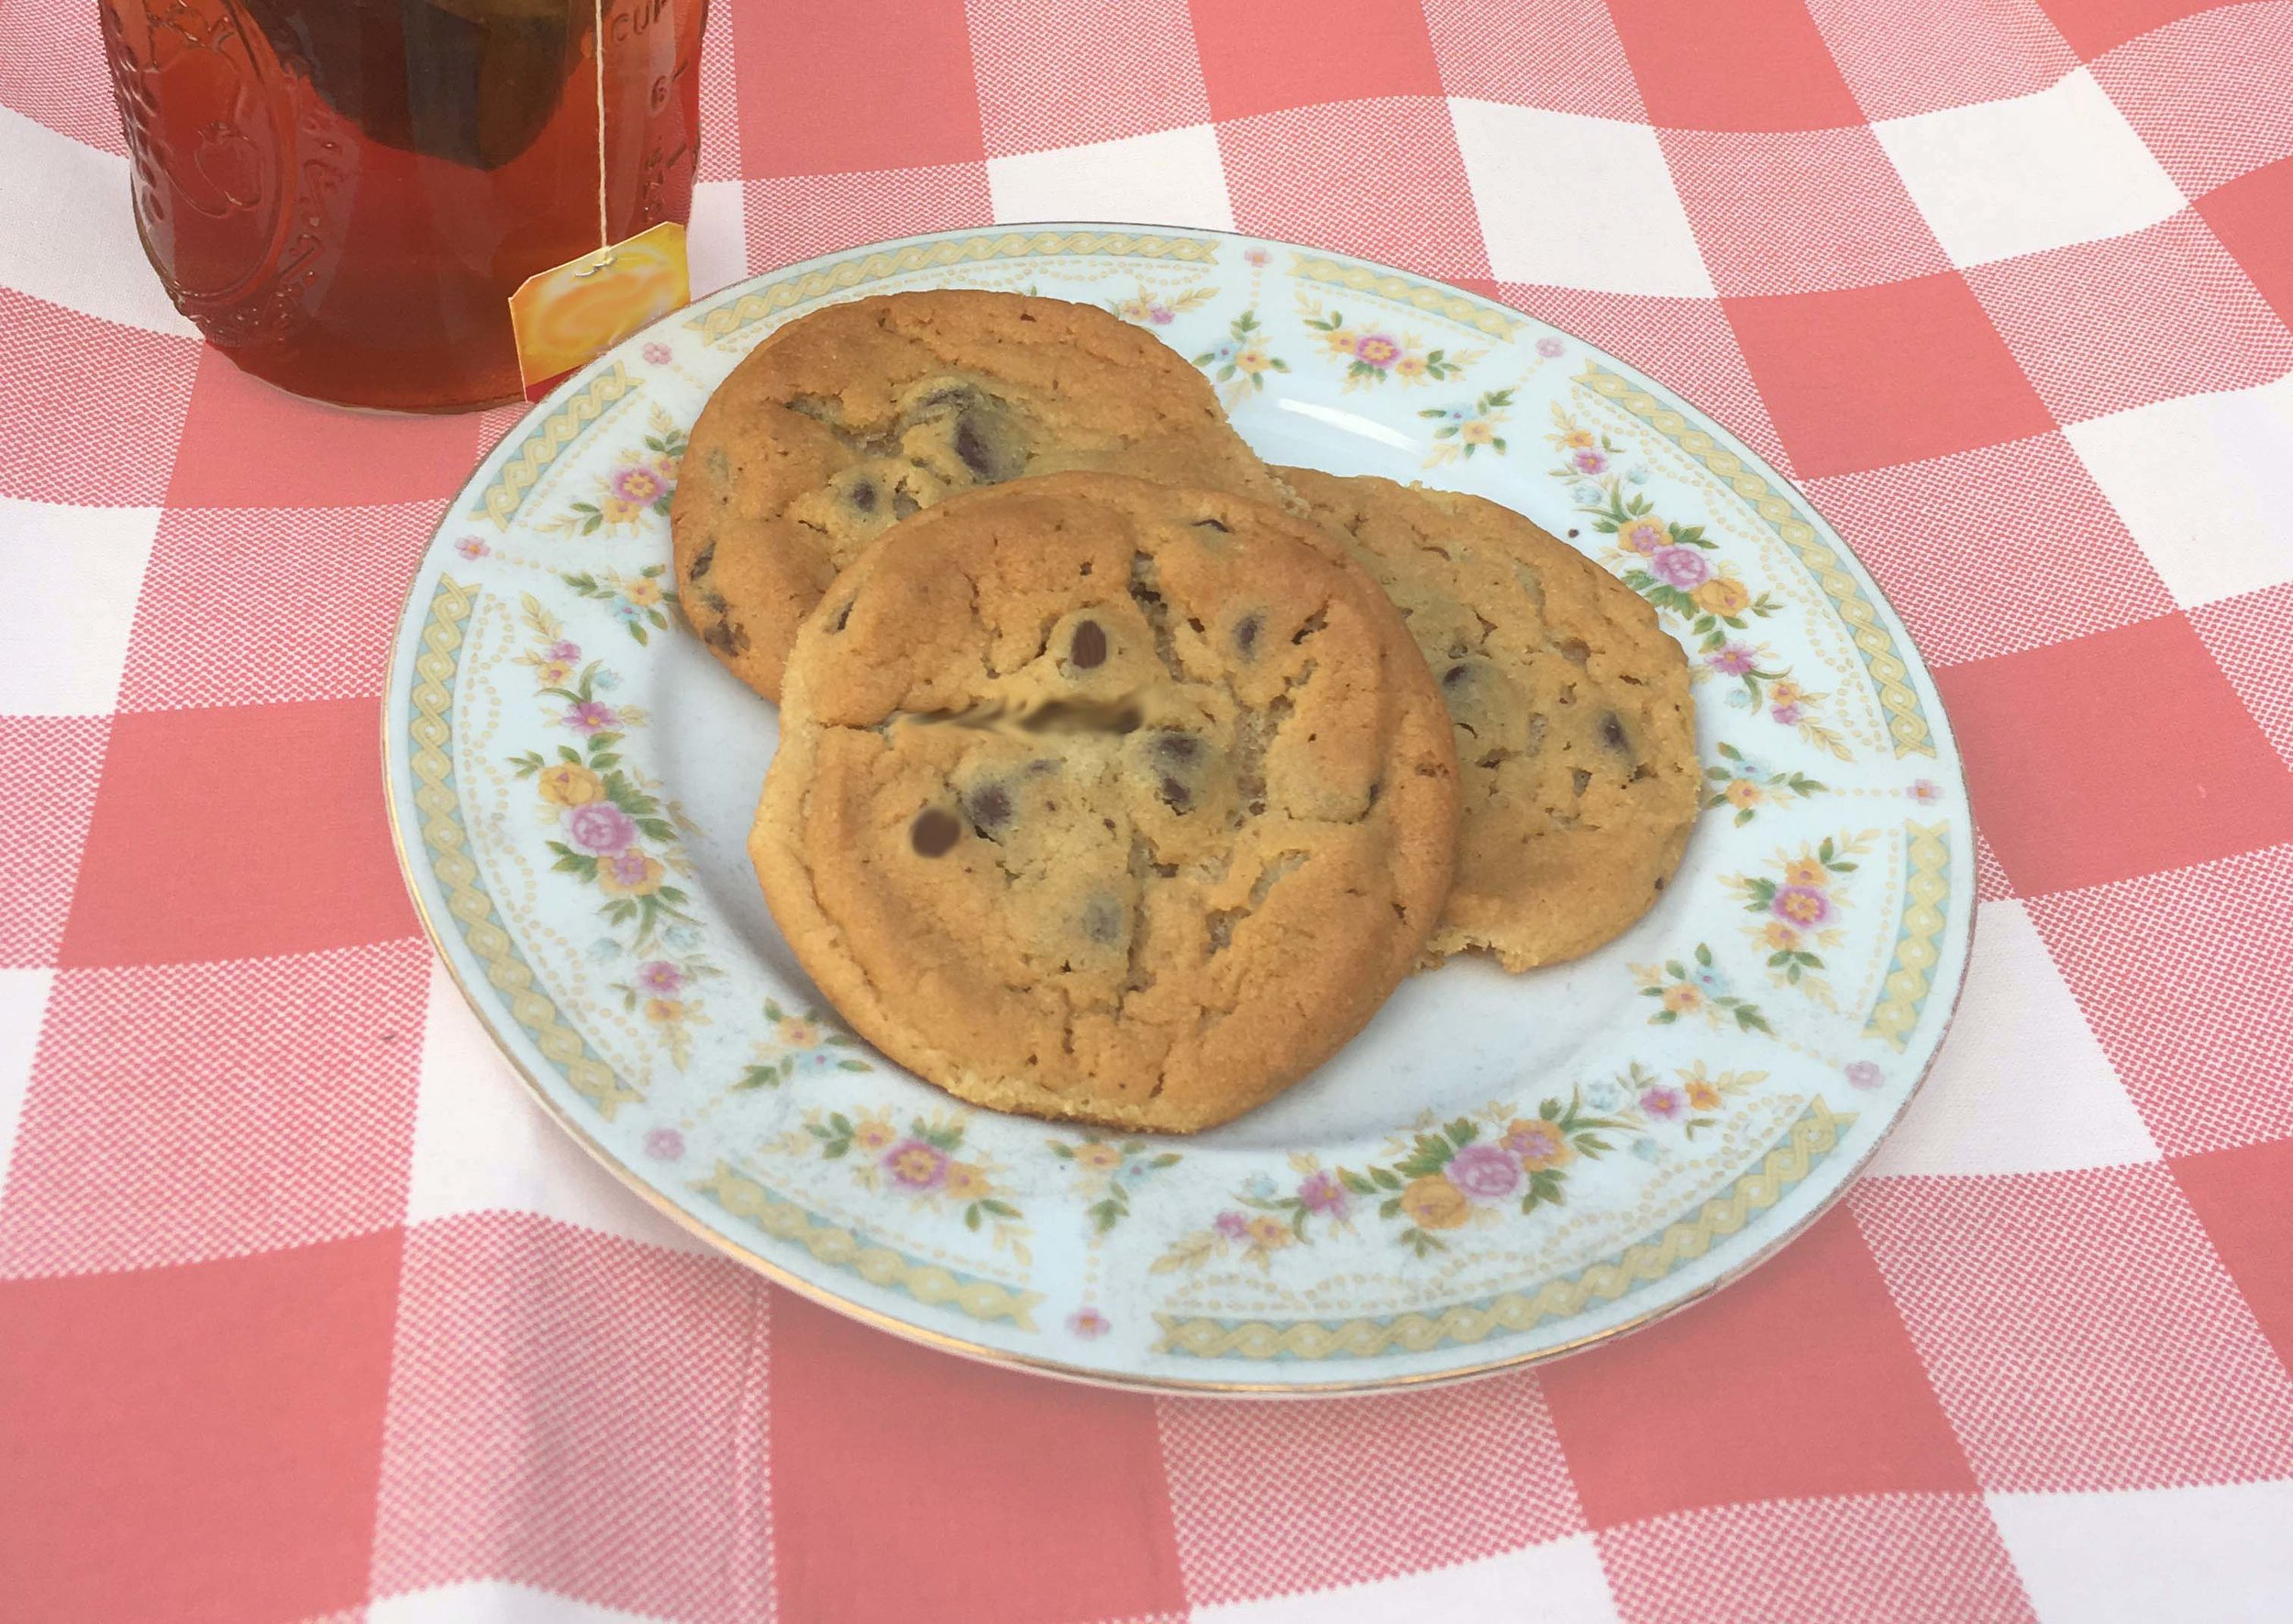 Satarra's amazing chocolate chip cookies